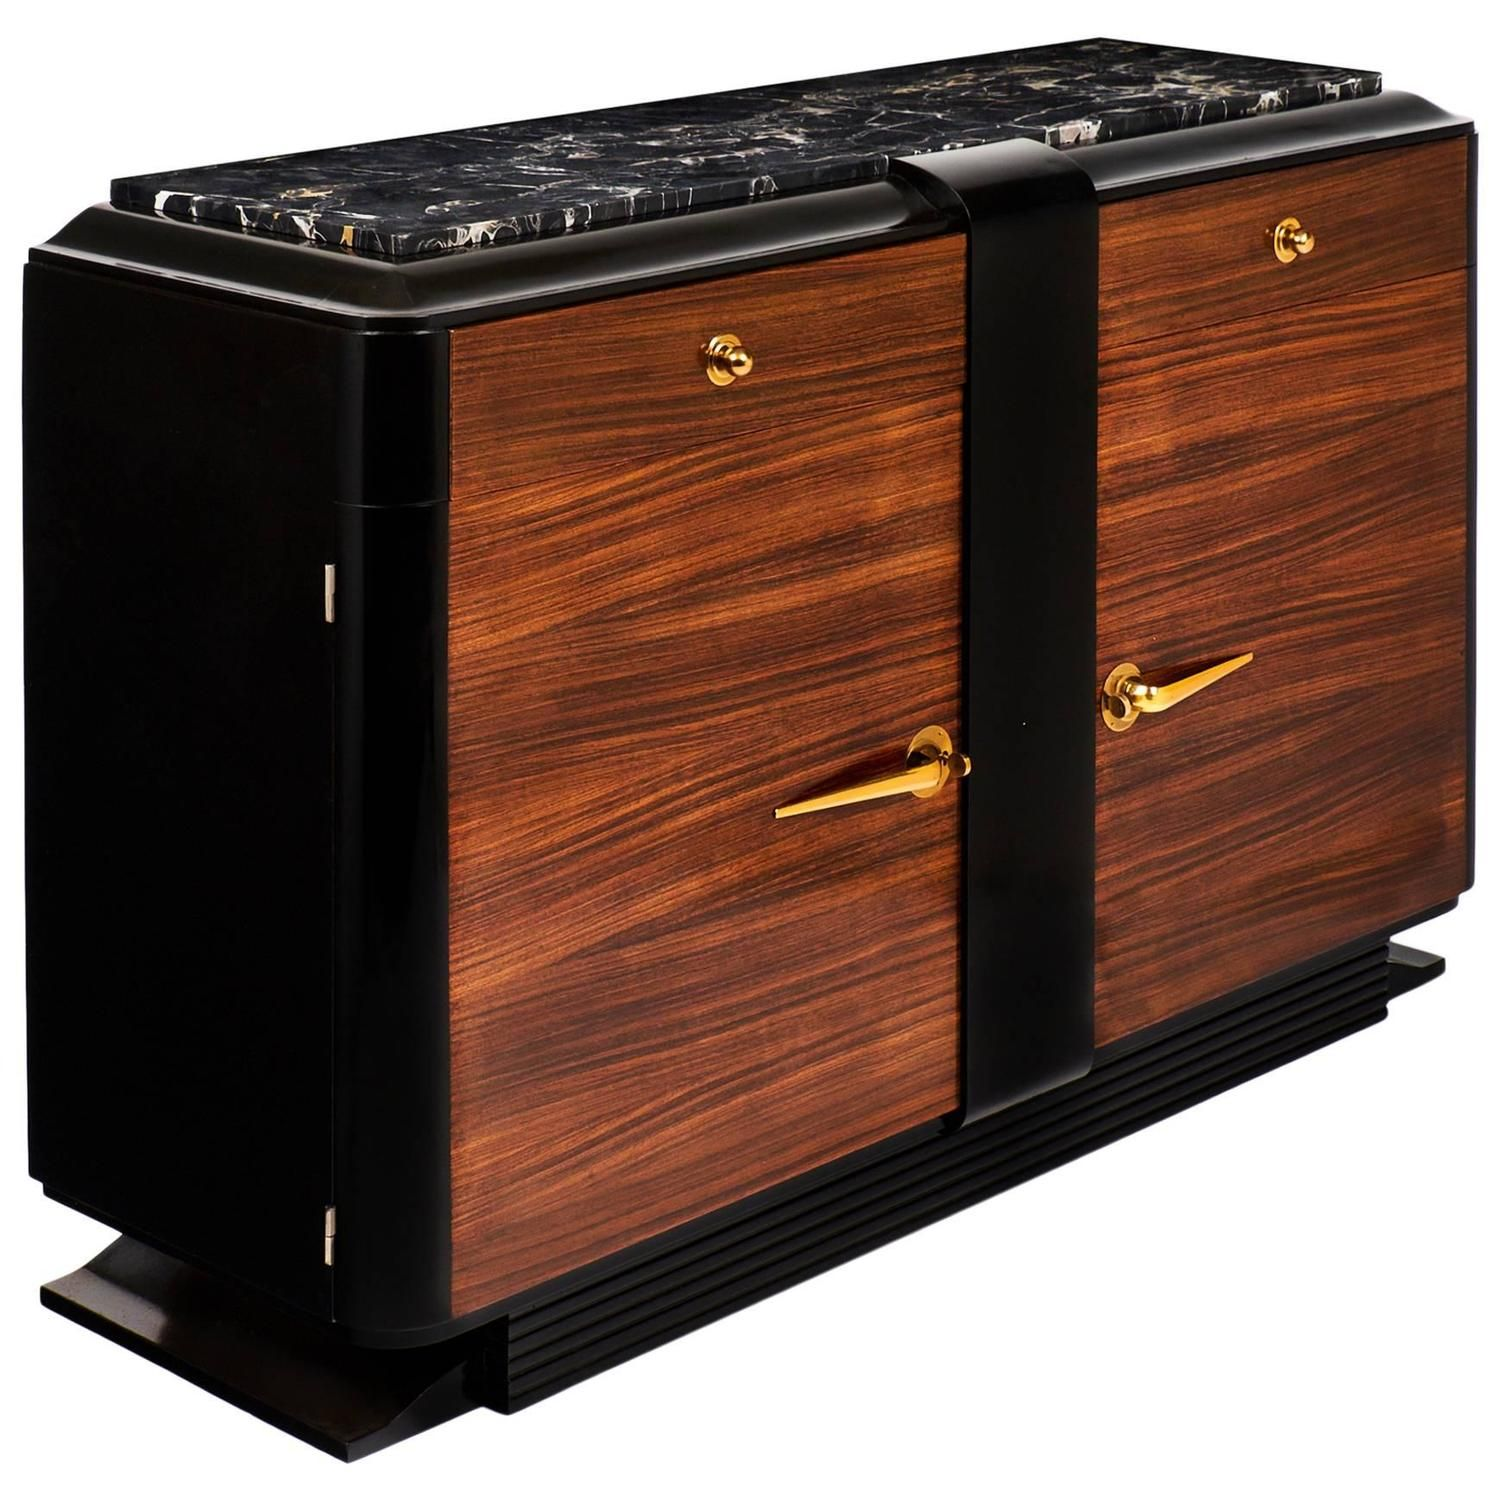 French Art Deco Rosewood Buffet or Bar in the Manner of Andr� Arbus   From a unique collection of antique and modern buffets at https://www.1stdibs.com/furniture/storage-case-pieces/buffets/